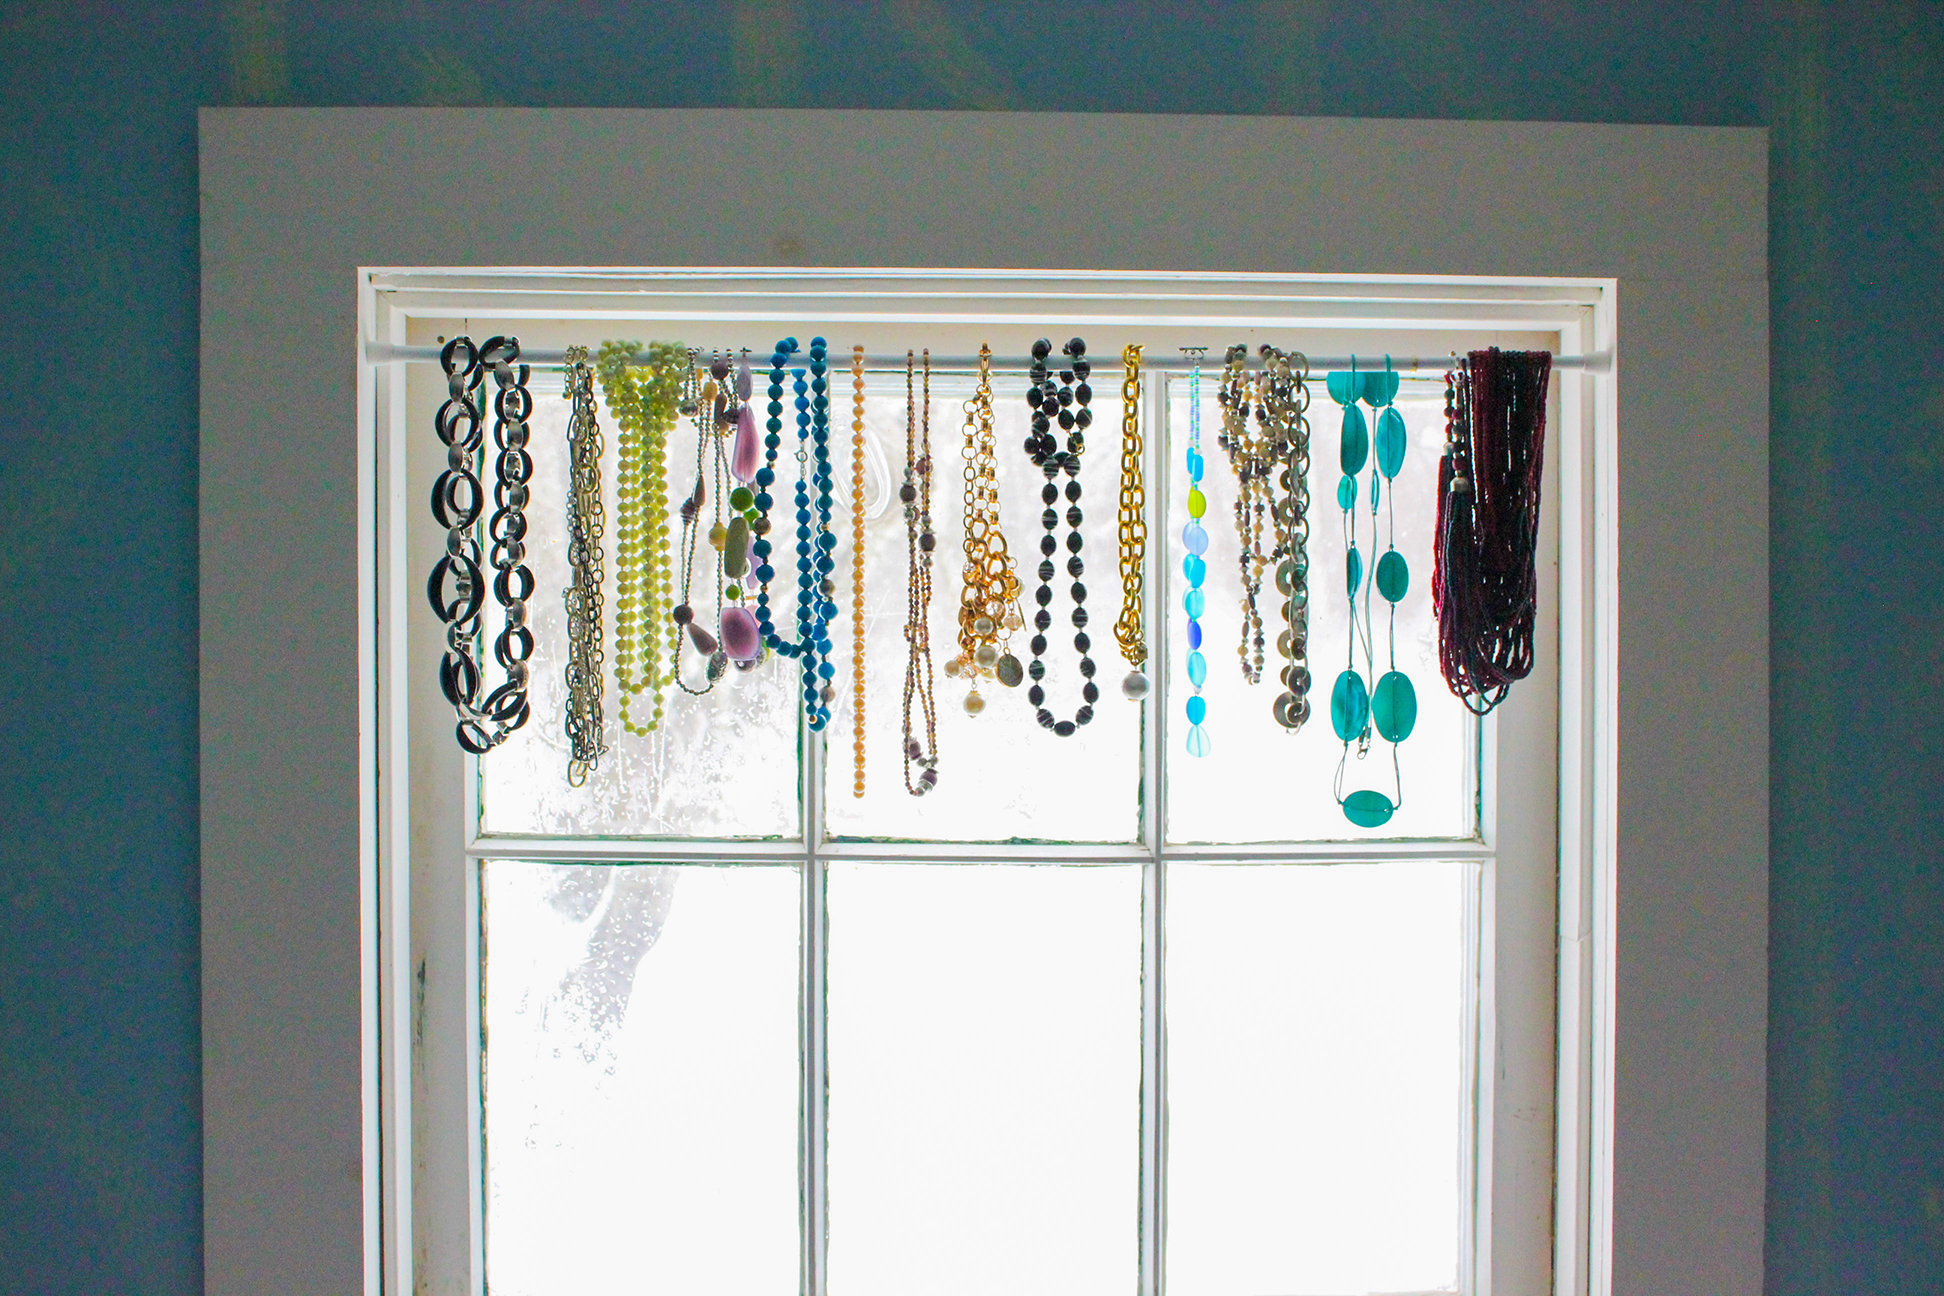 No-Sew Window Treatments: Creative Valances from Your Own Wardrobe